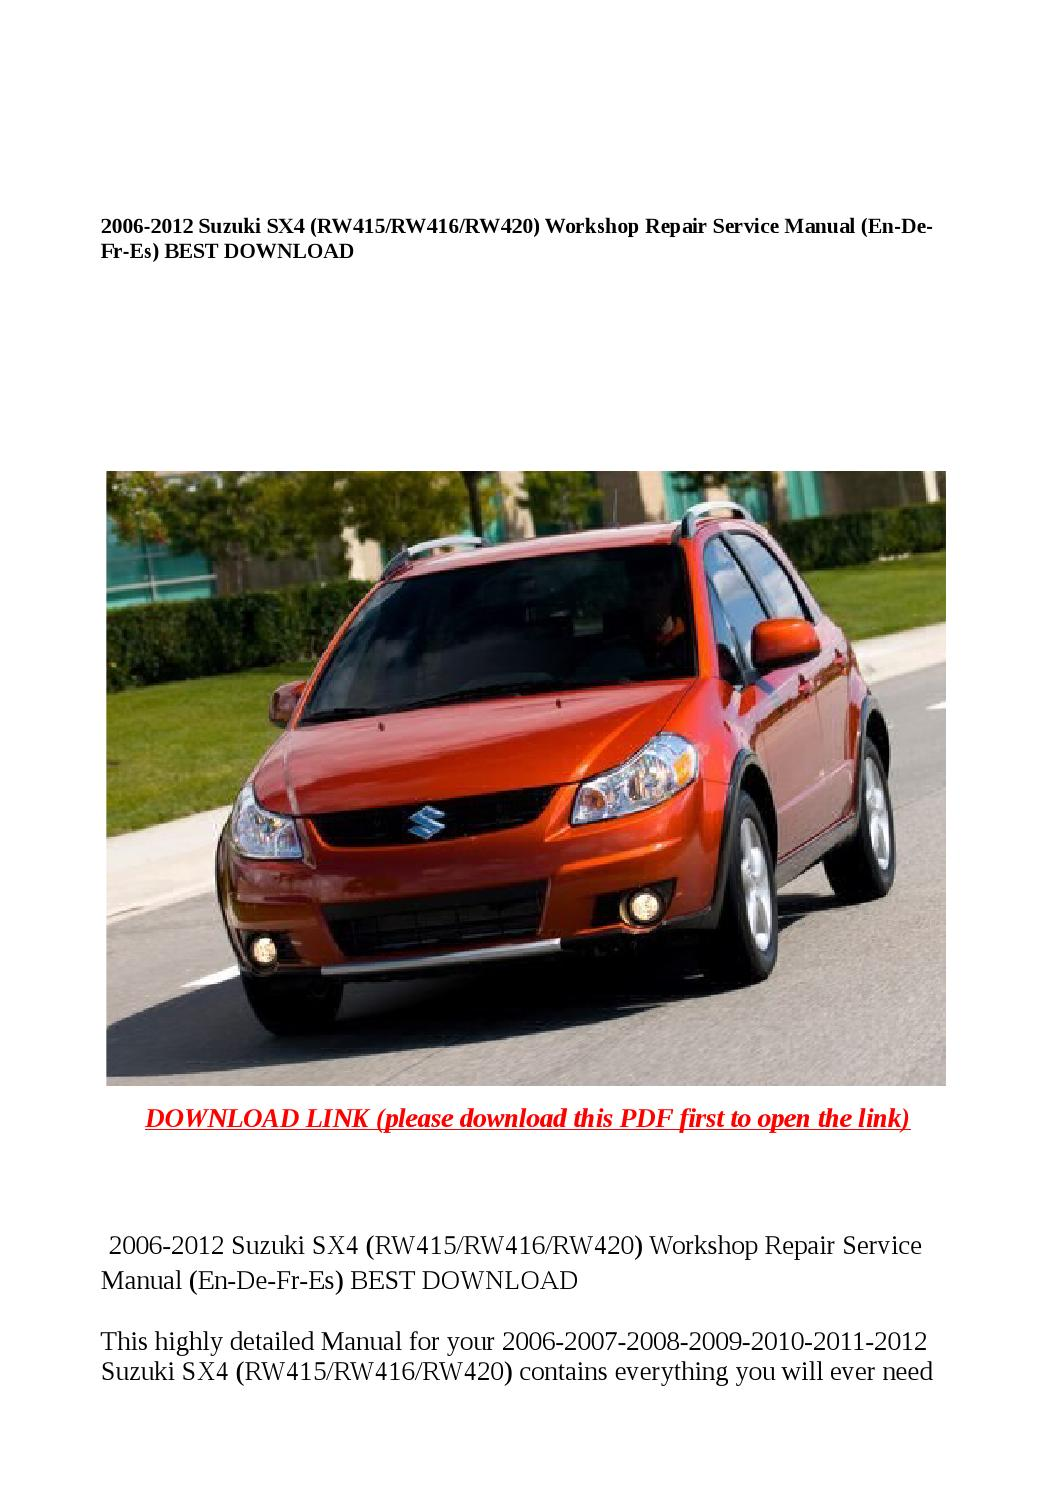 2006 2012 suzuki sx4 (rw415 rw416 rw420) workshop repair service manual (en  de fr es) best download by Dora tang - issuu